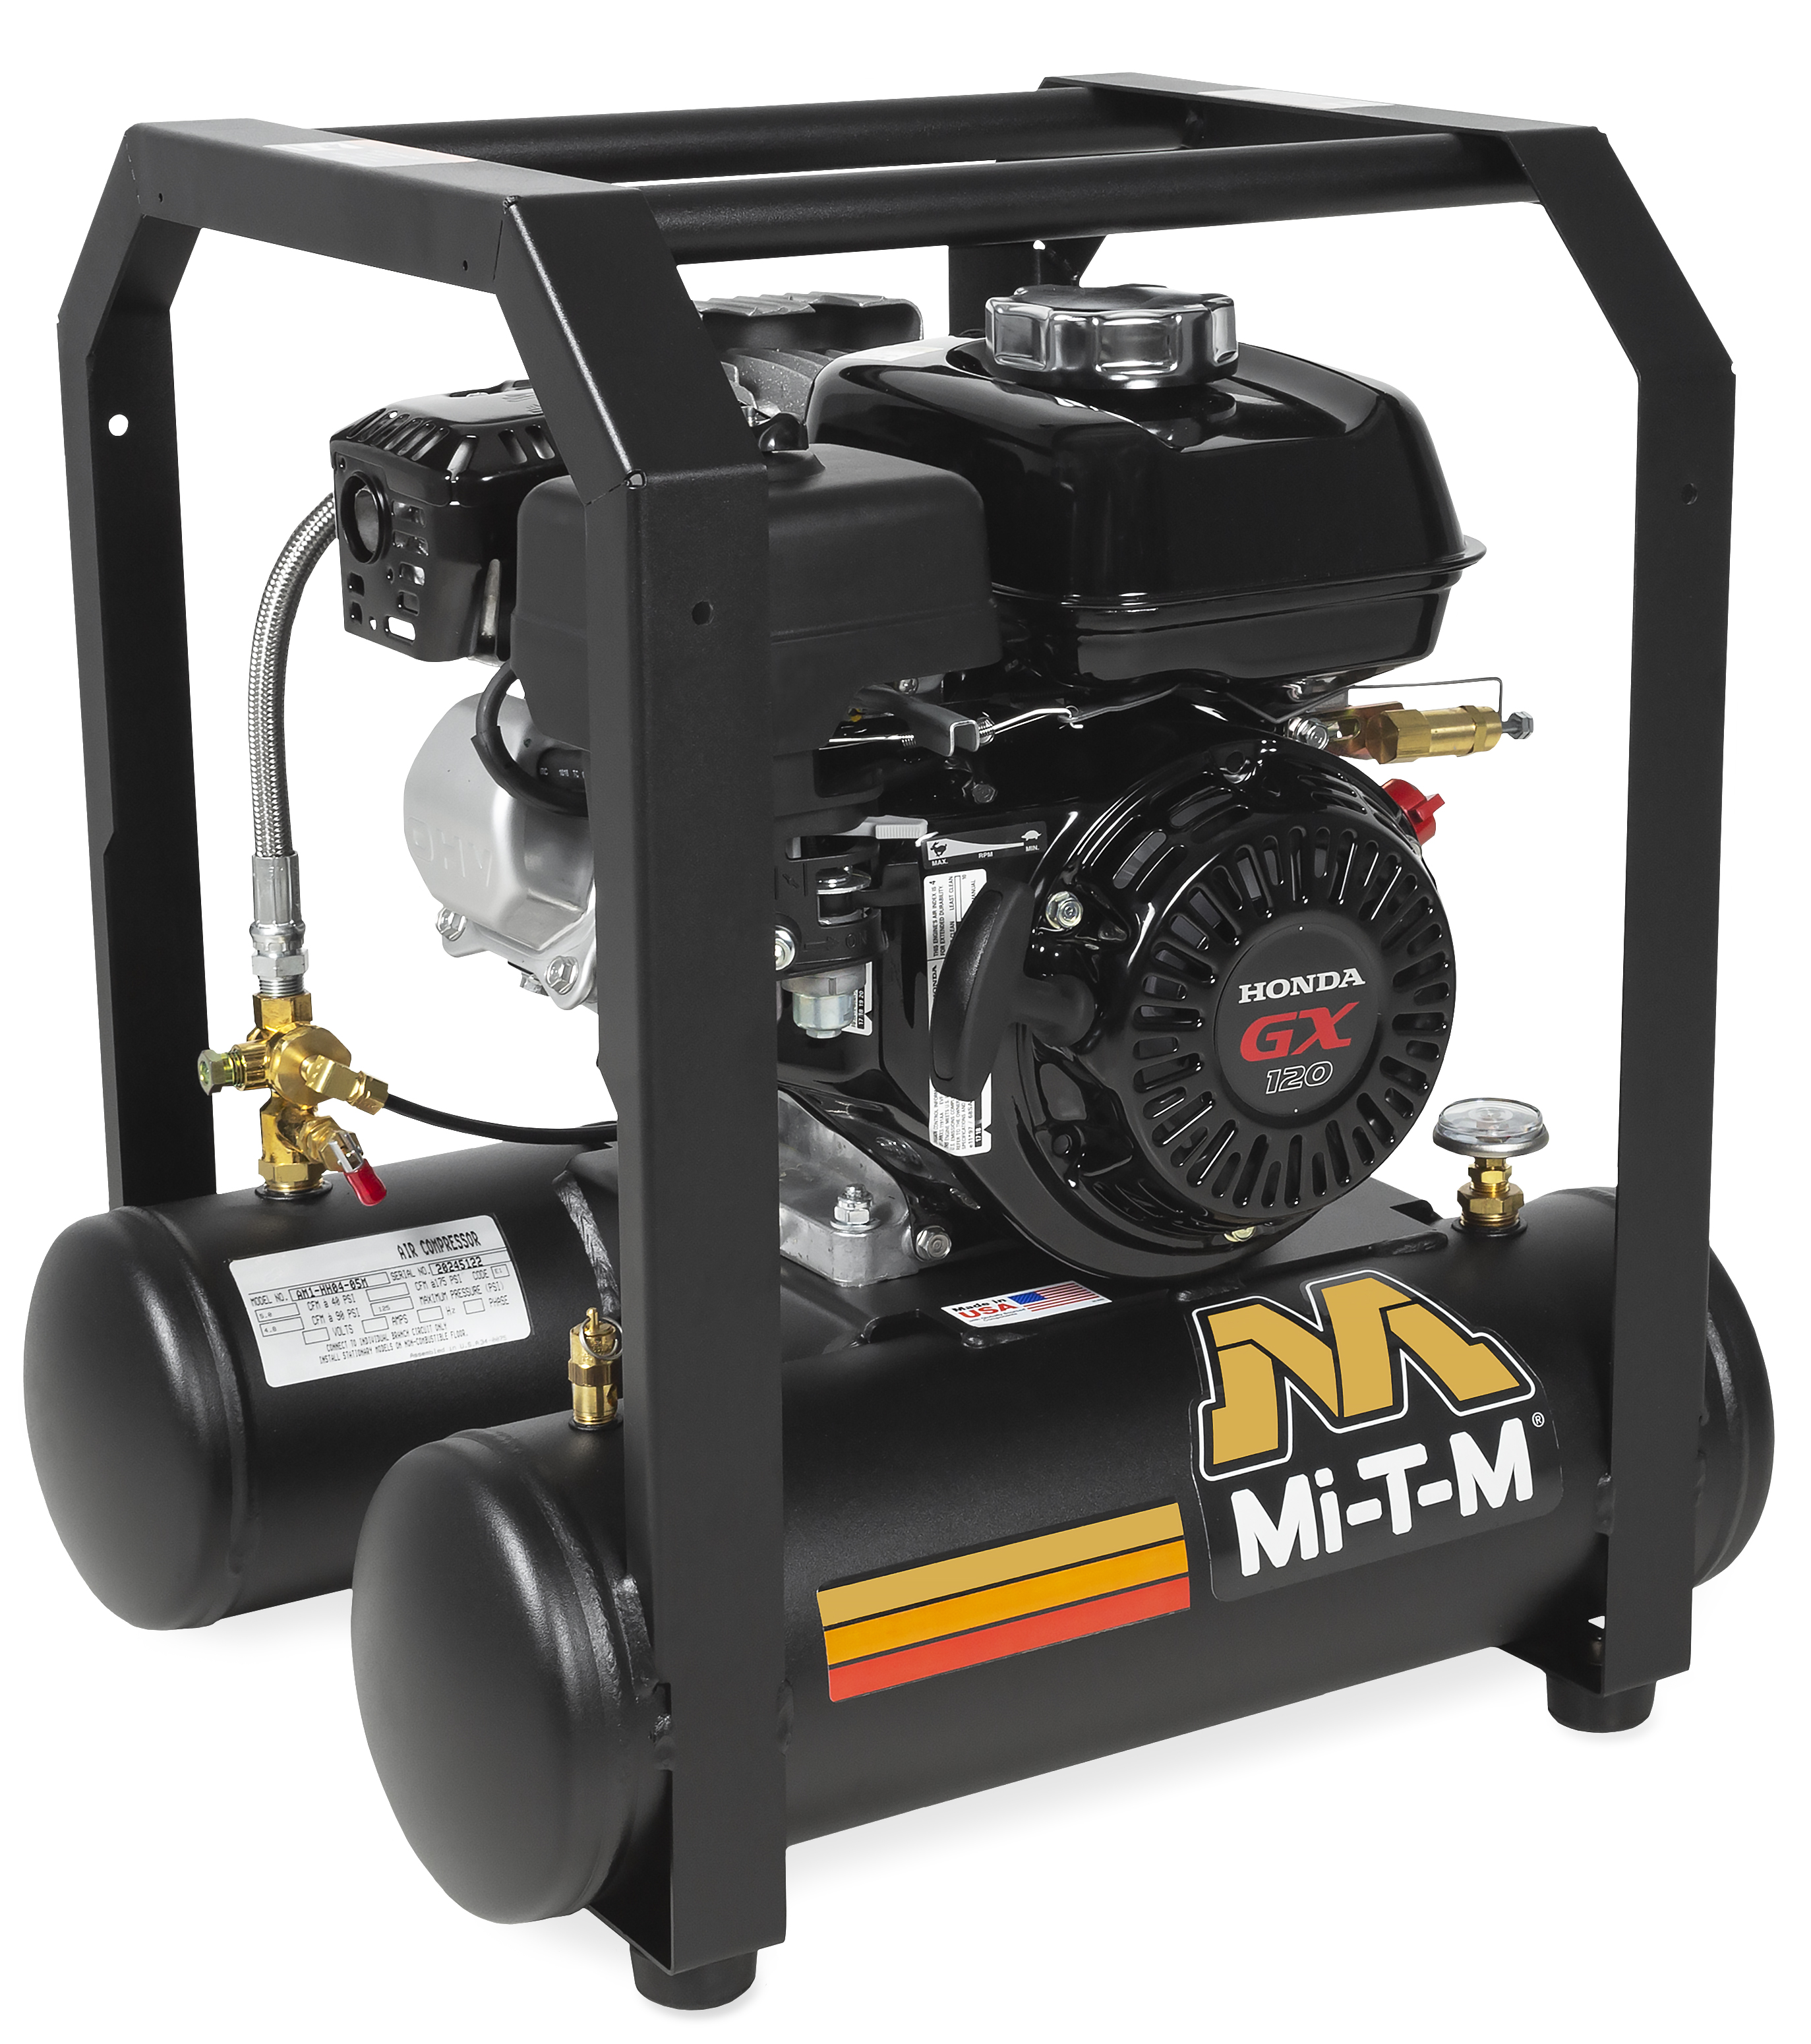 Air Compressors Home Workshop Products John Deere Us >> Am1 Hh04 05m Mi T M